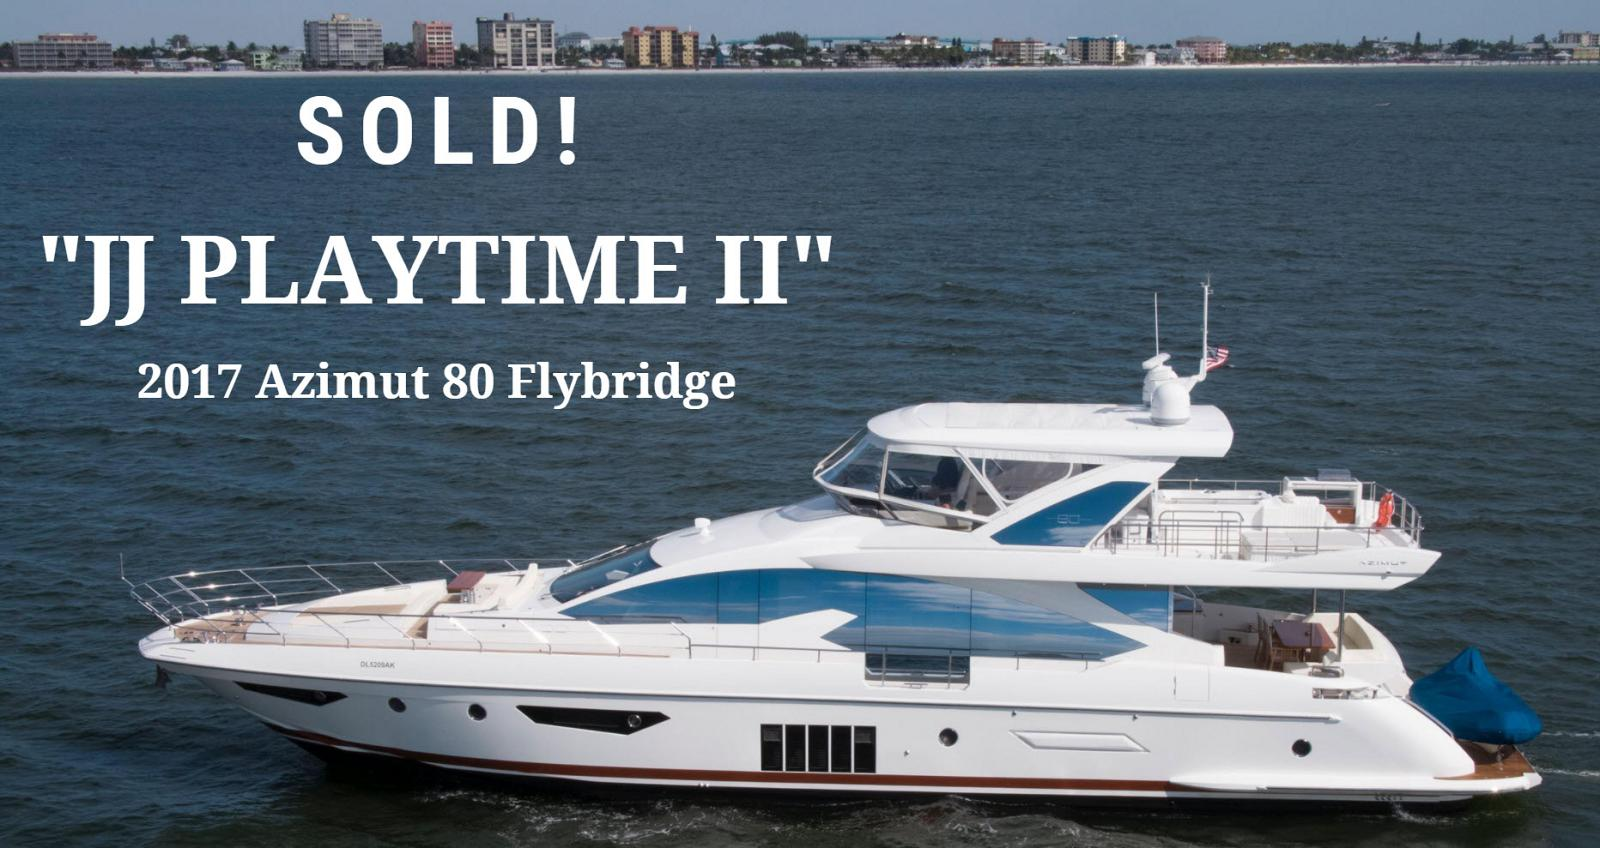 photo of Azimut Yachts 80 Flybridge JJ Playtime II Sold By United